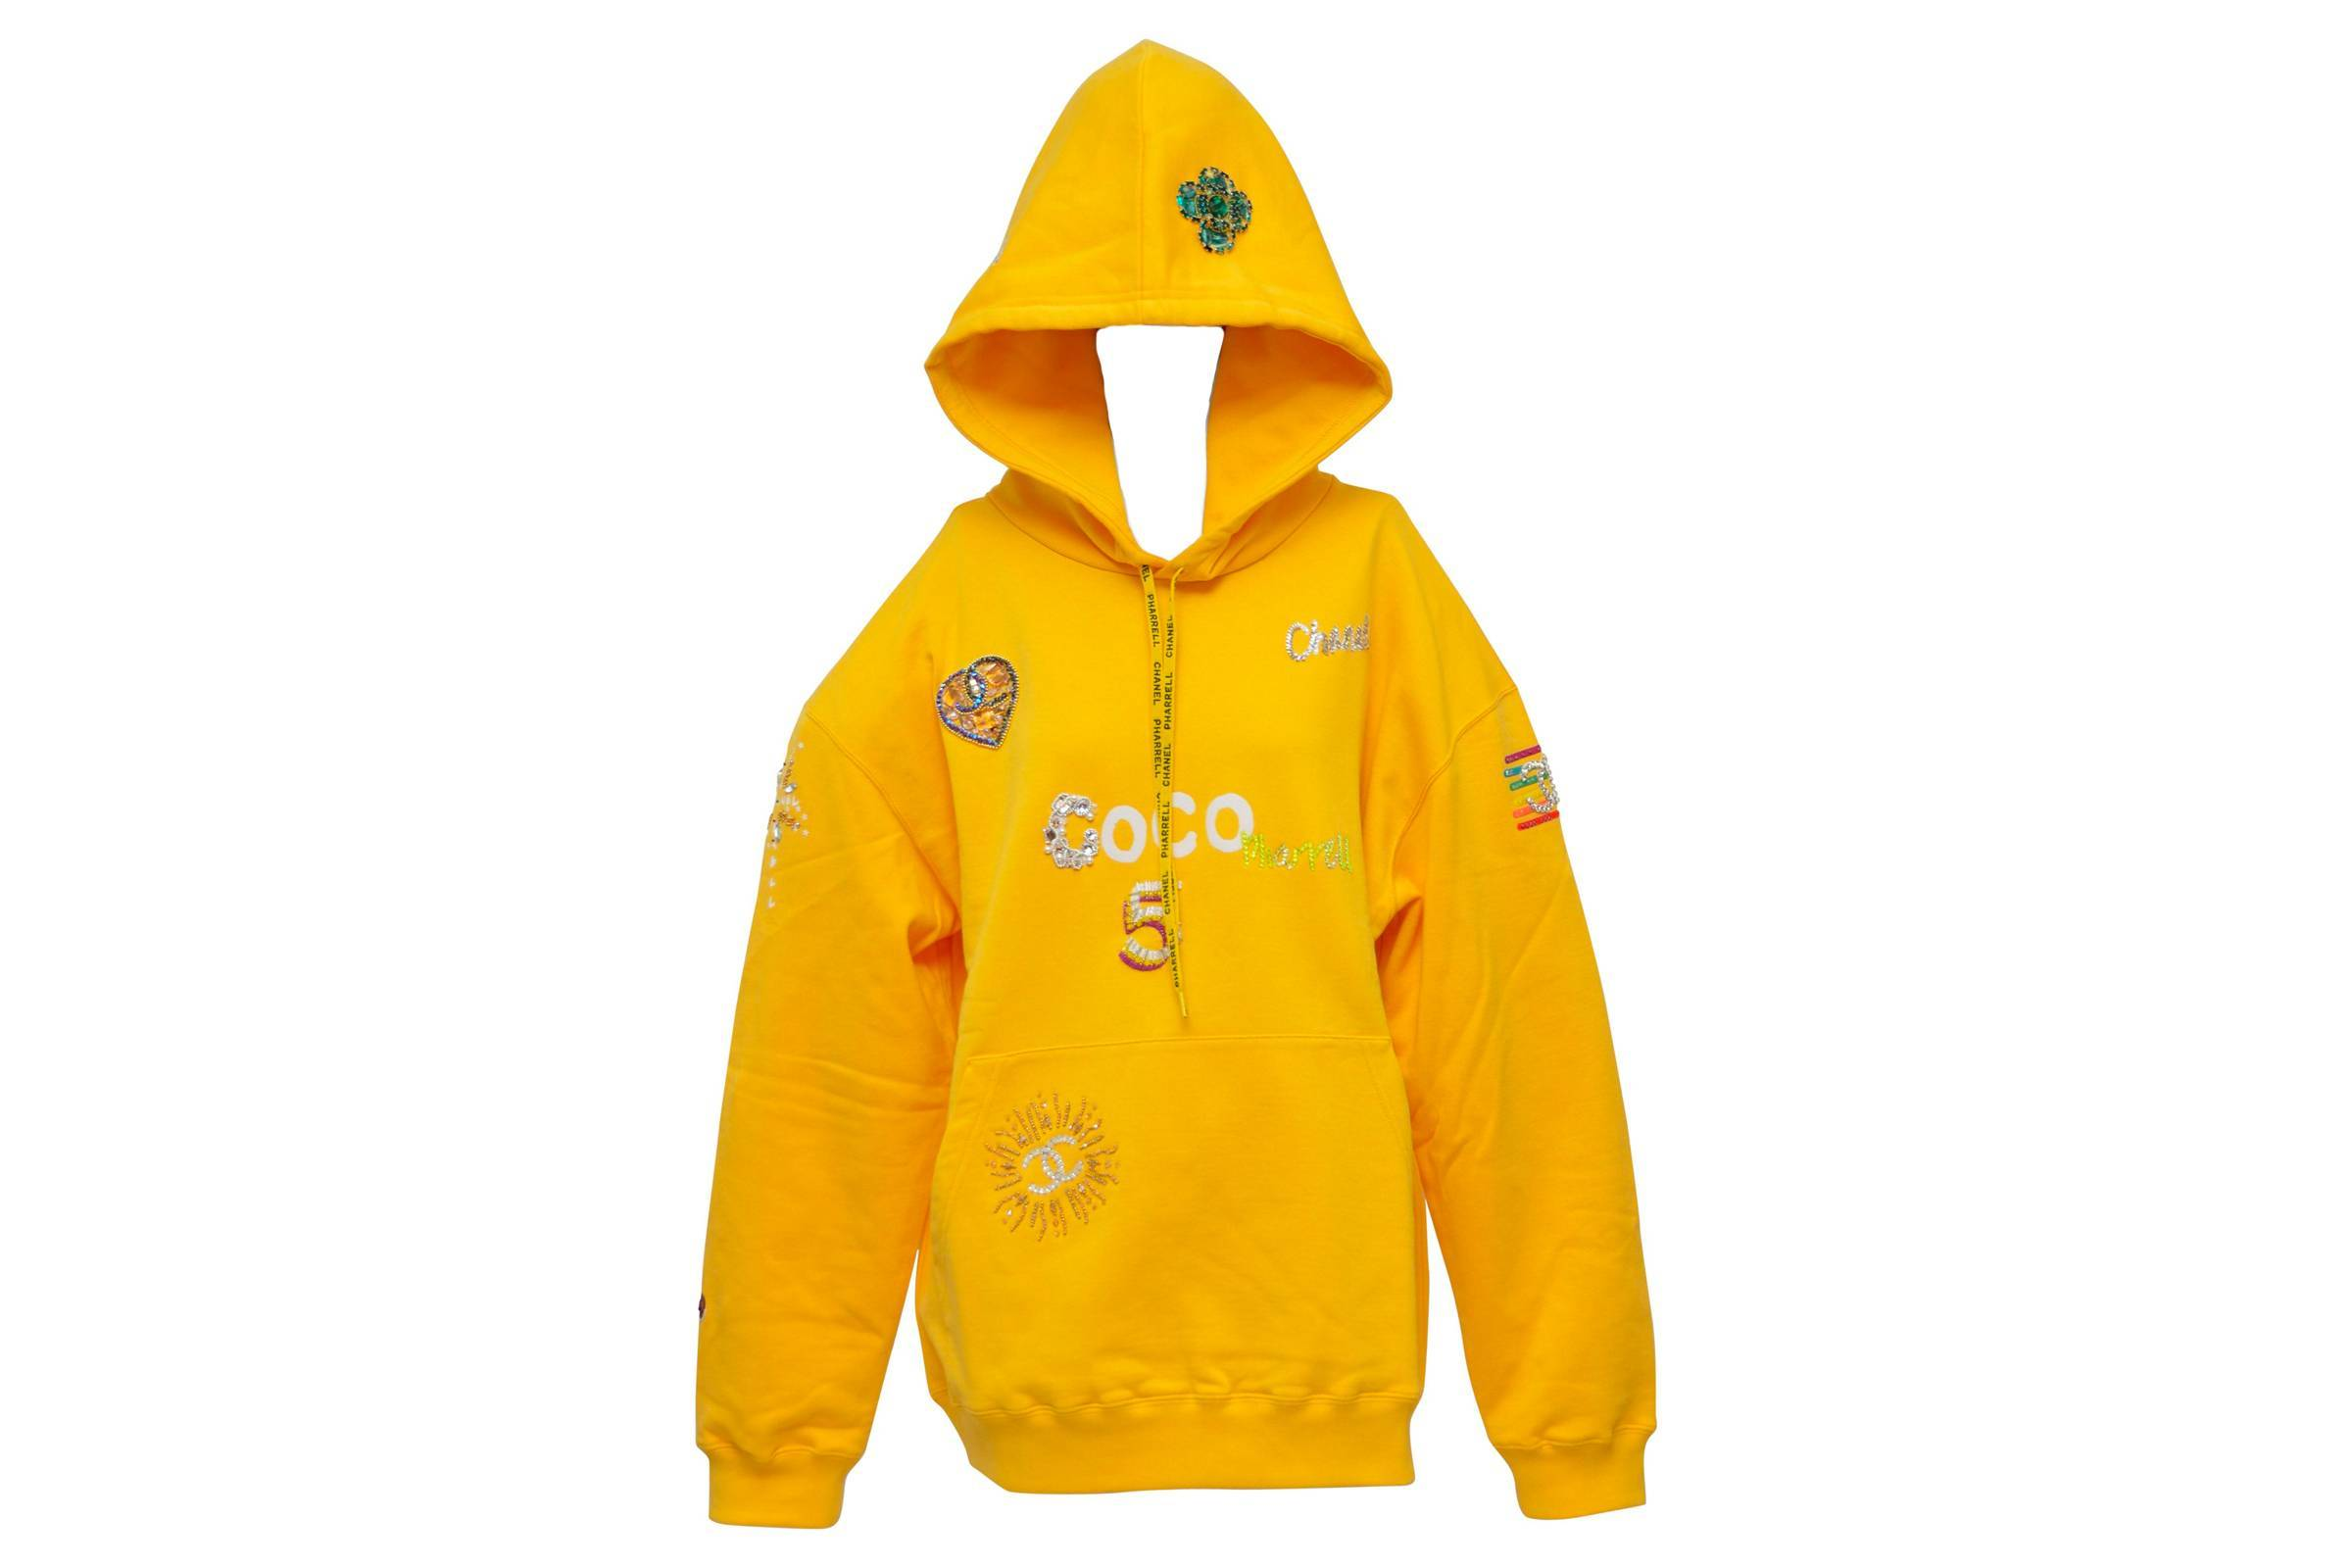 Pharrell x Chanel Lesage Embroidery Yellow Hoodie